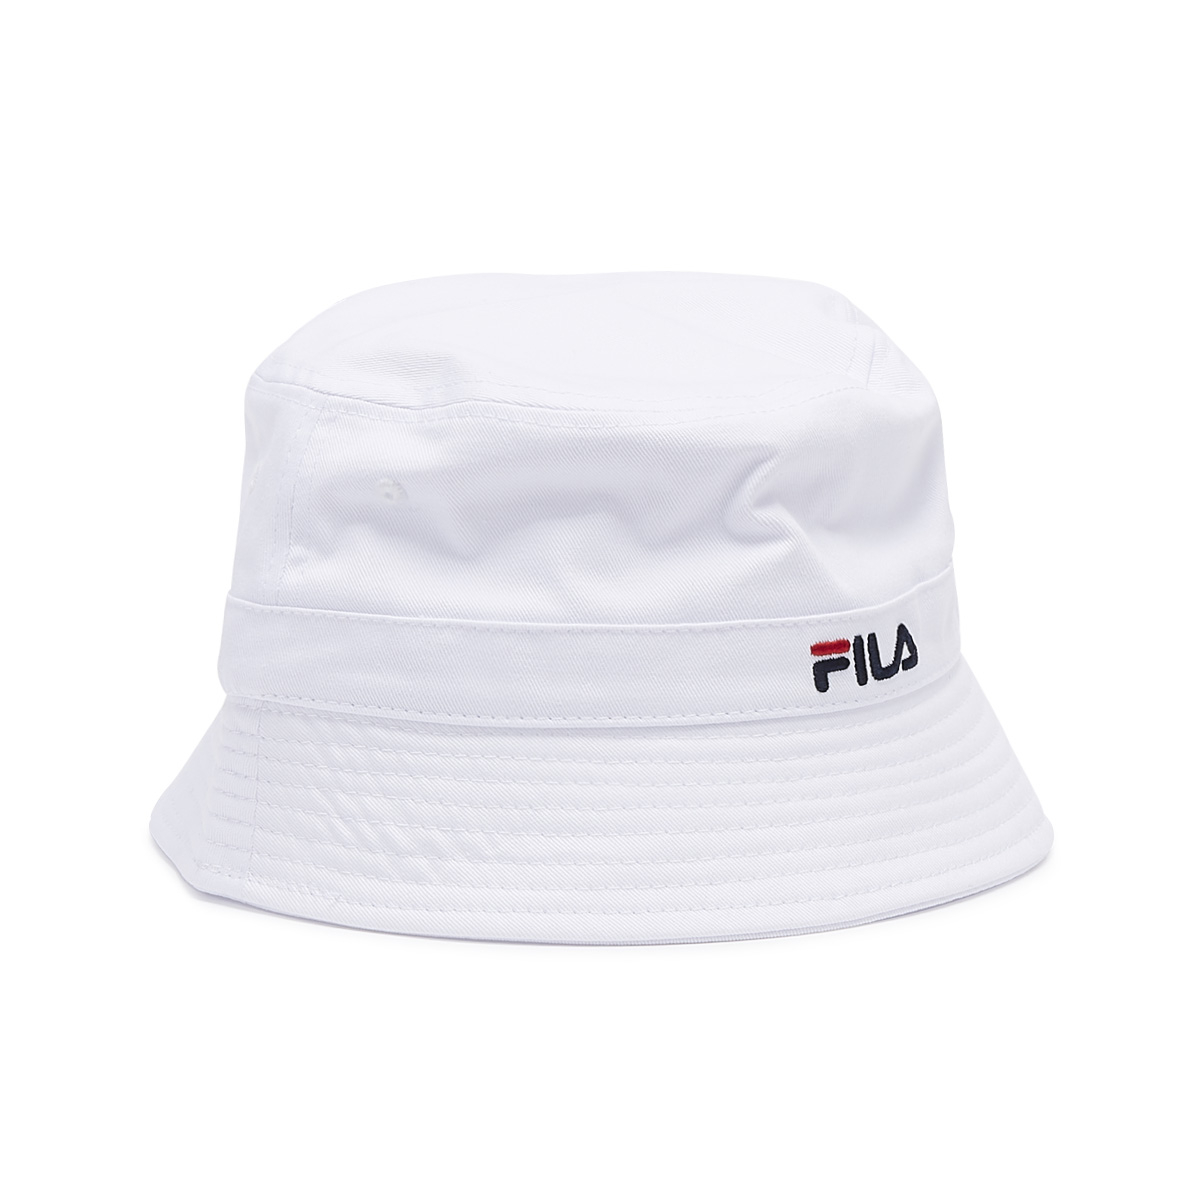 7d8c4a3f Details about Fila Butler White Bucket Hat Cotton Travel Sun Fishing Beach  Summer